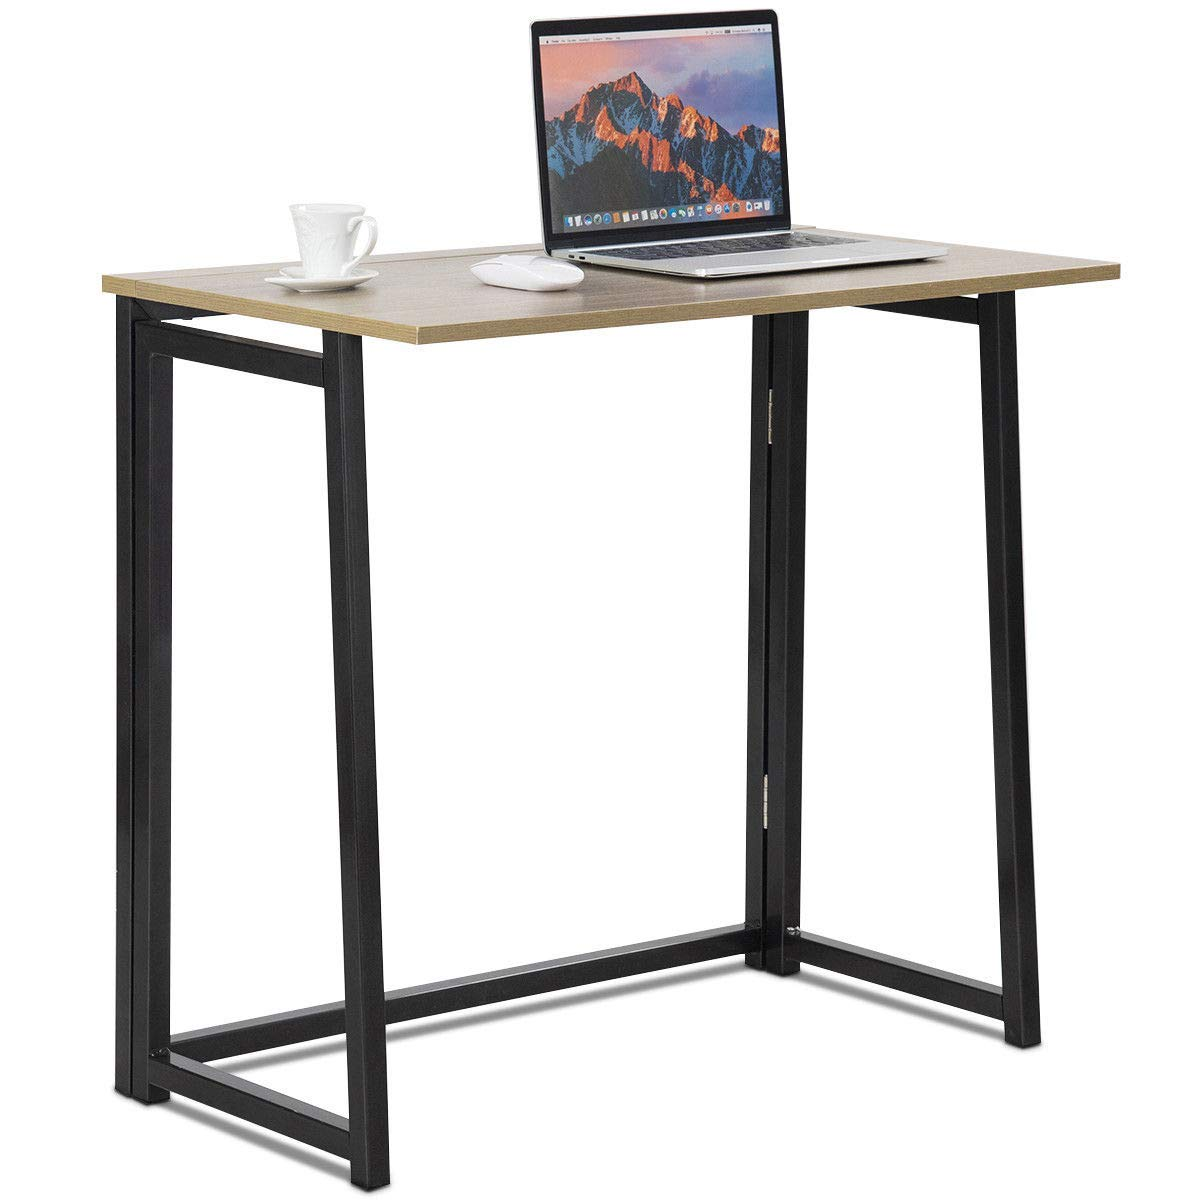 Computer Desk Table Laptop PC Writing Study Workstation Office Folding